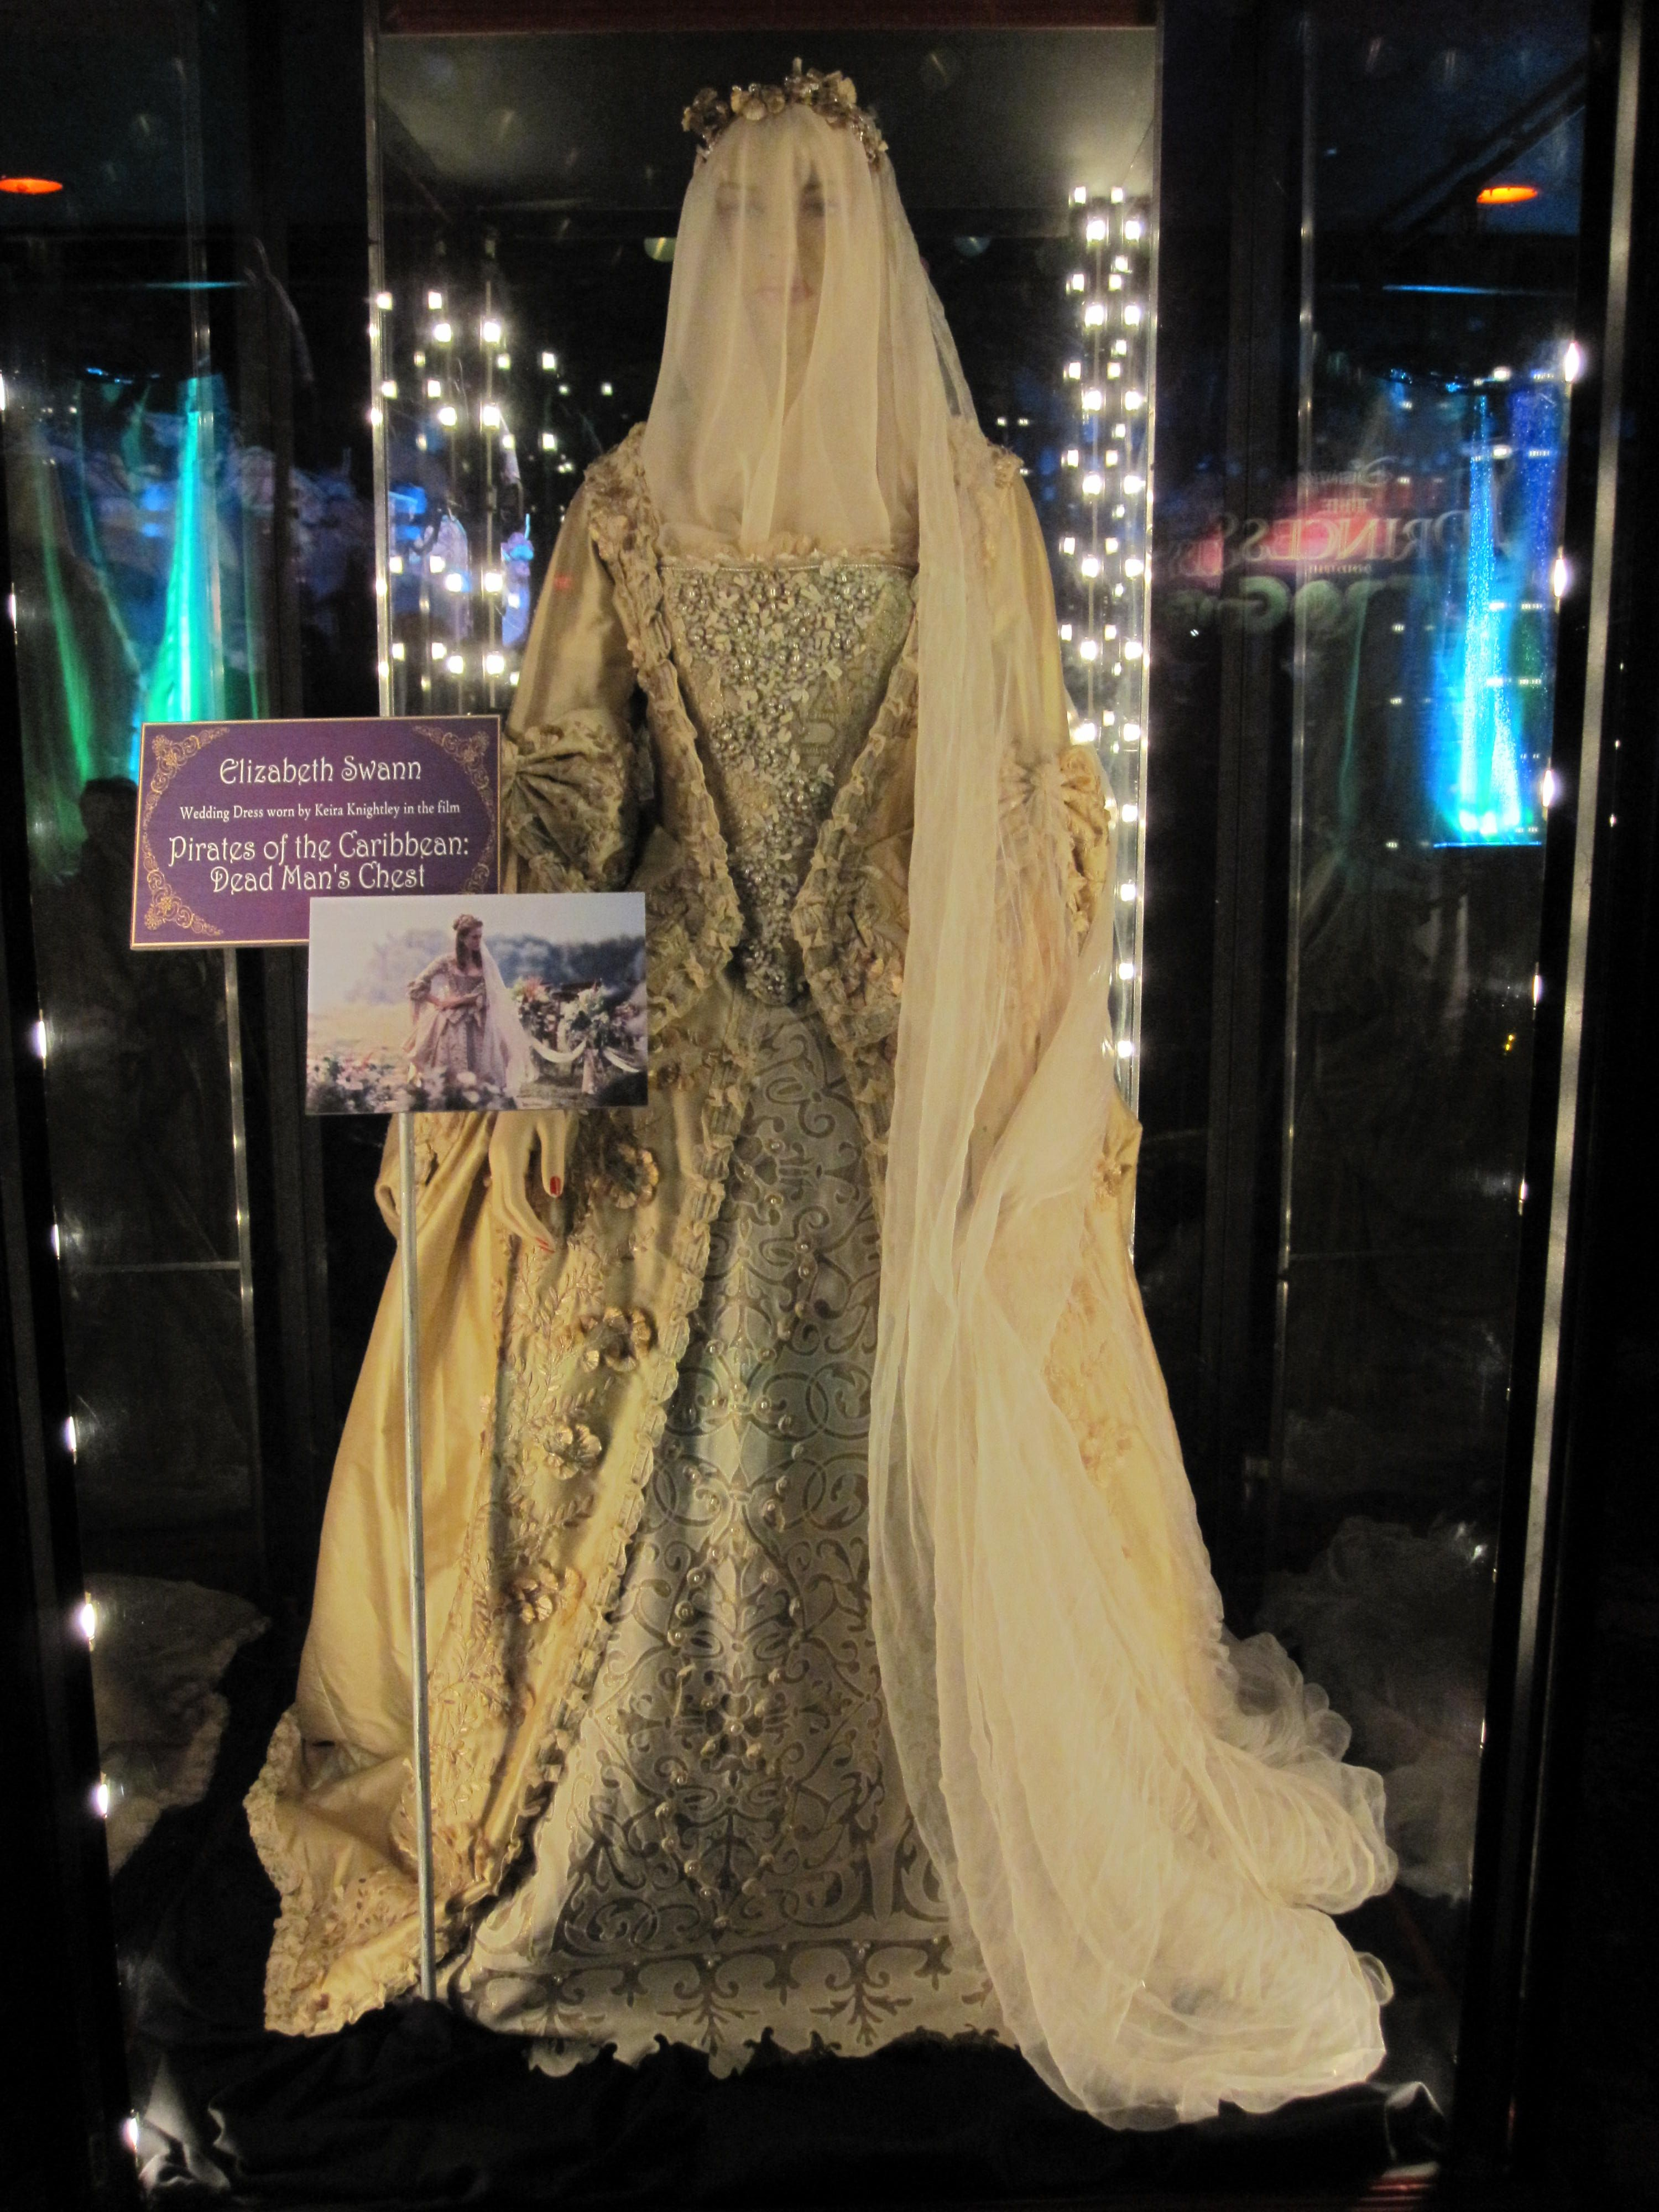 Elizabeth swann 39 s wedding dress from dead man 39 s chest for Caribbean wedding dresses for guests